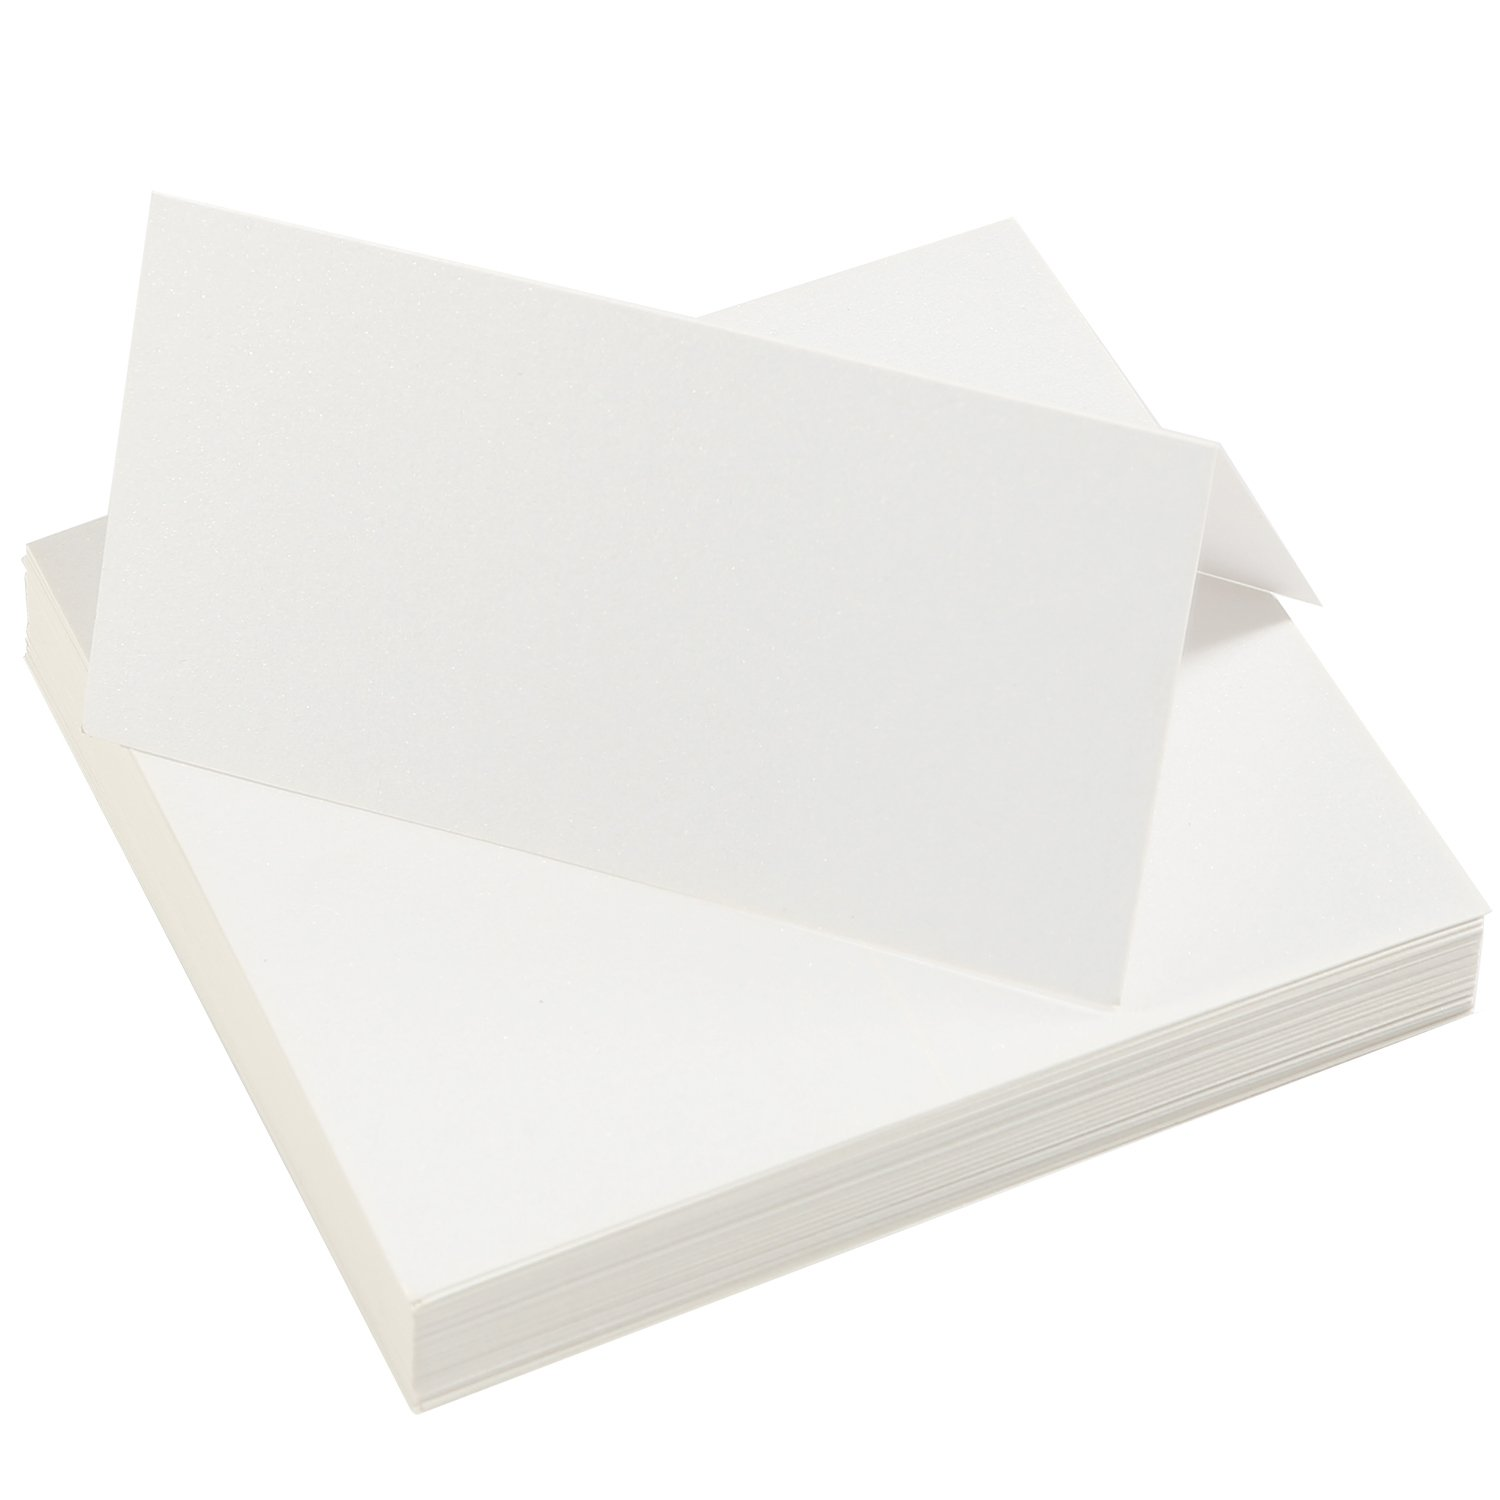 Aneco 60 Pieces White Blank Table Cards Name Place Cards for Wedding Party Decoration or Meeting Favor